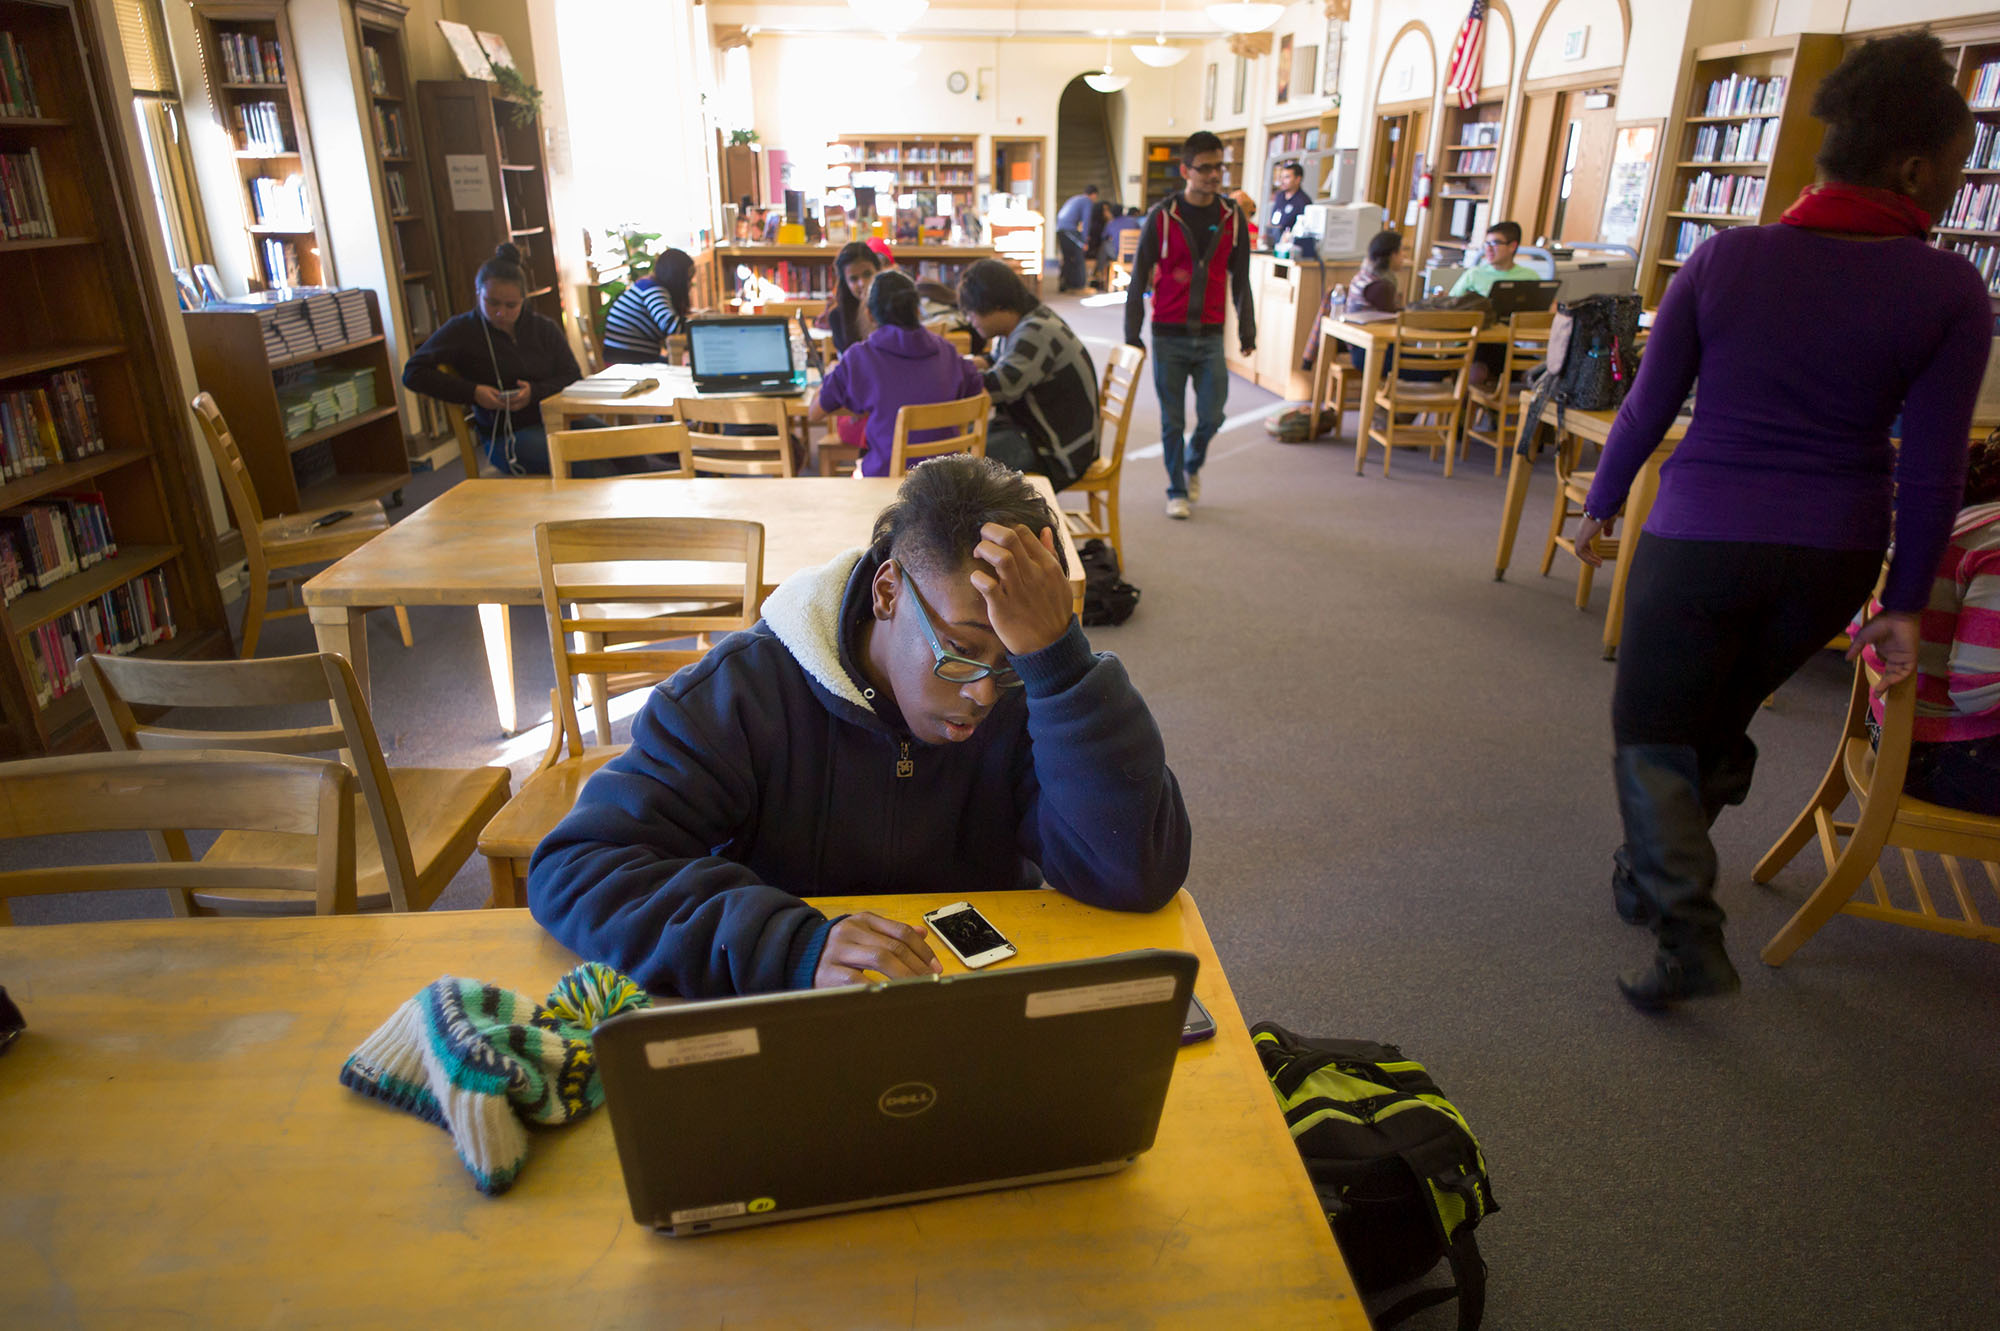 <p>Chaunse Dyson fills out online university applications in the library at South High School in Denver onThursday, Jan. 22, 2015.</p>